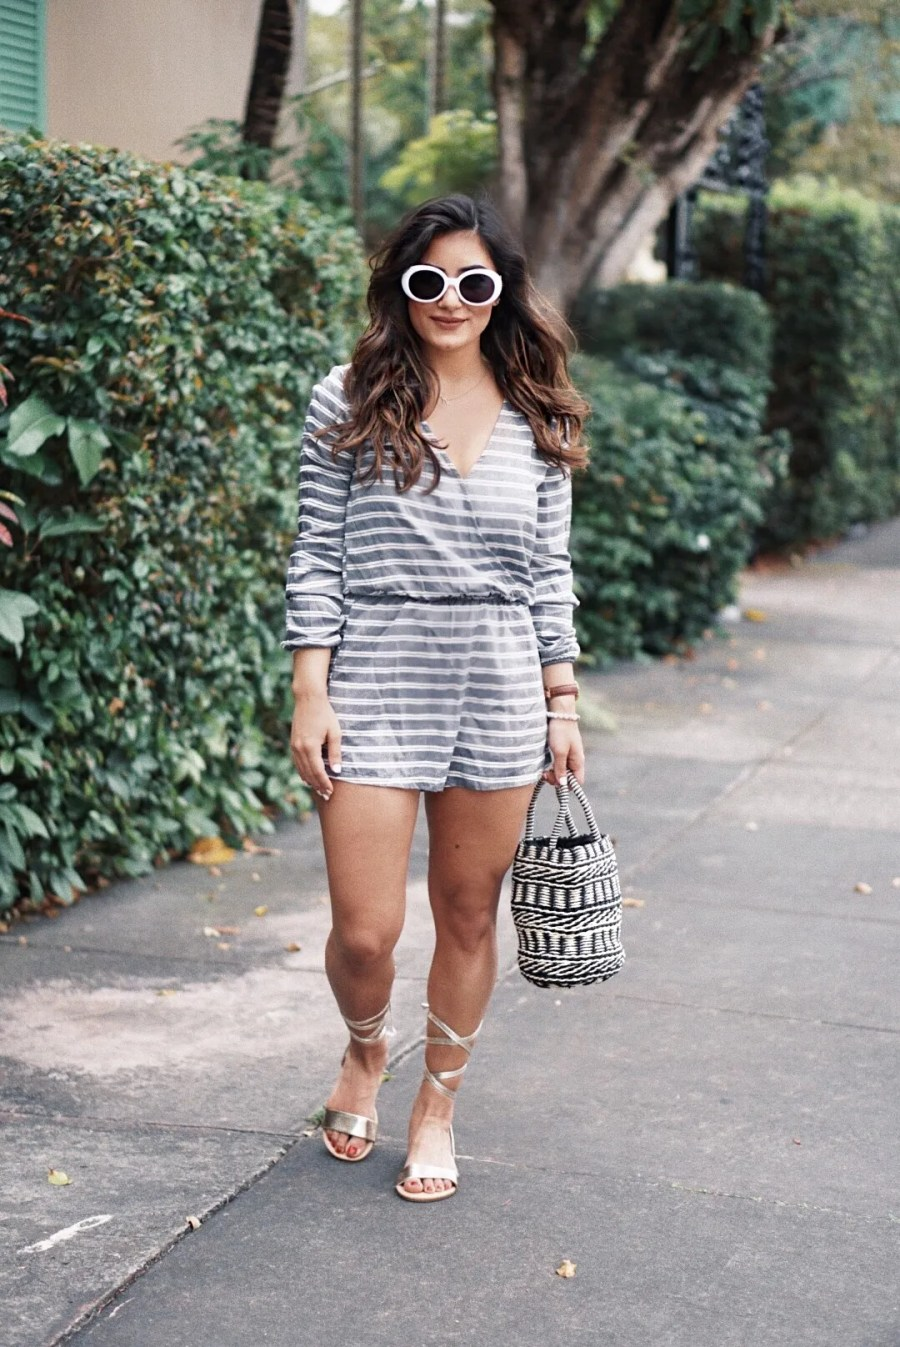 Romper Outfit Ideas